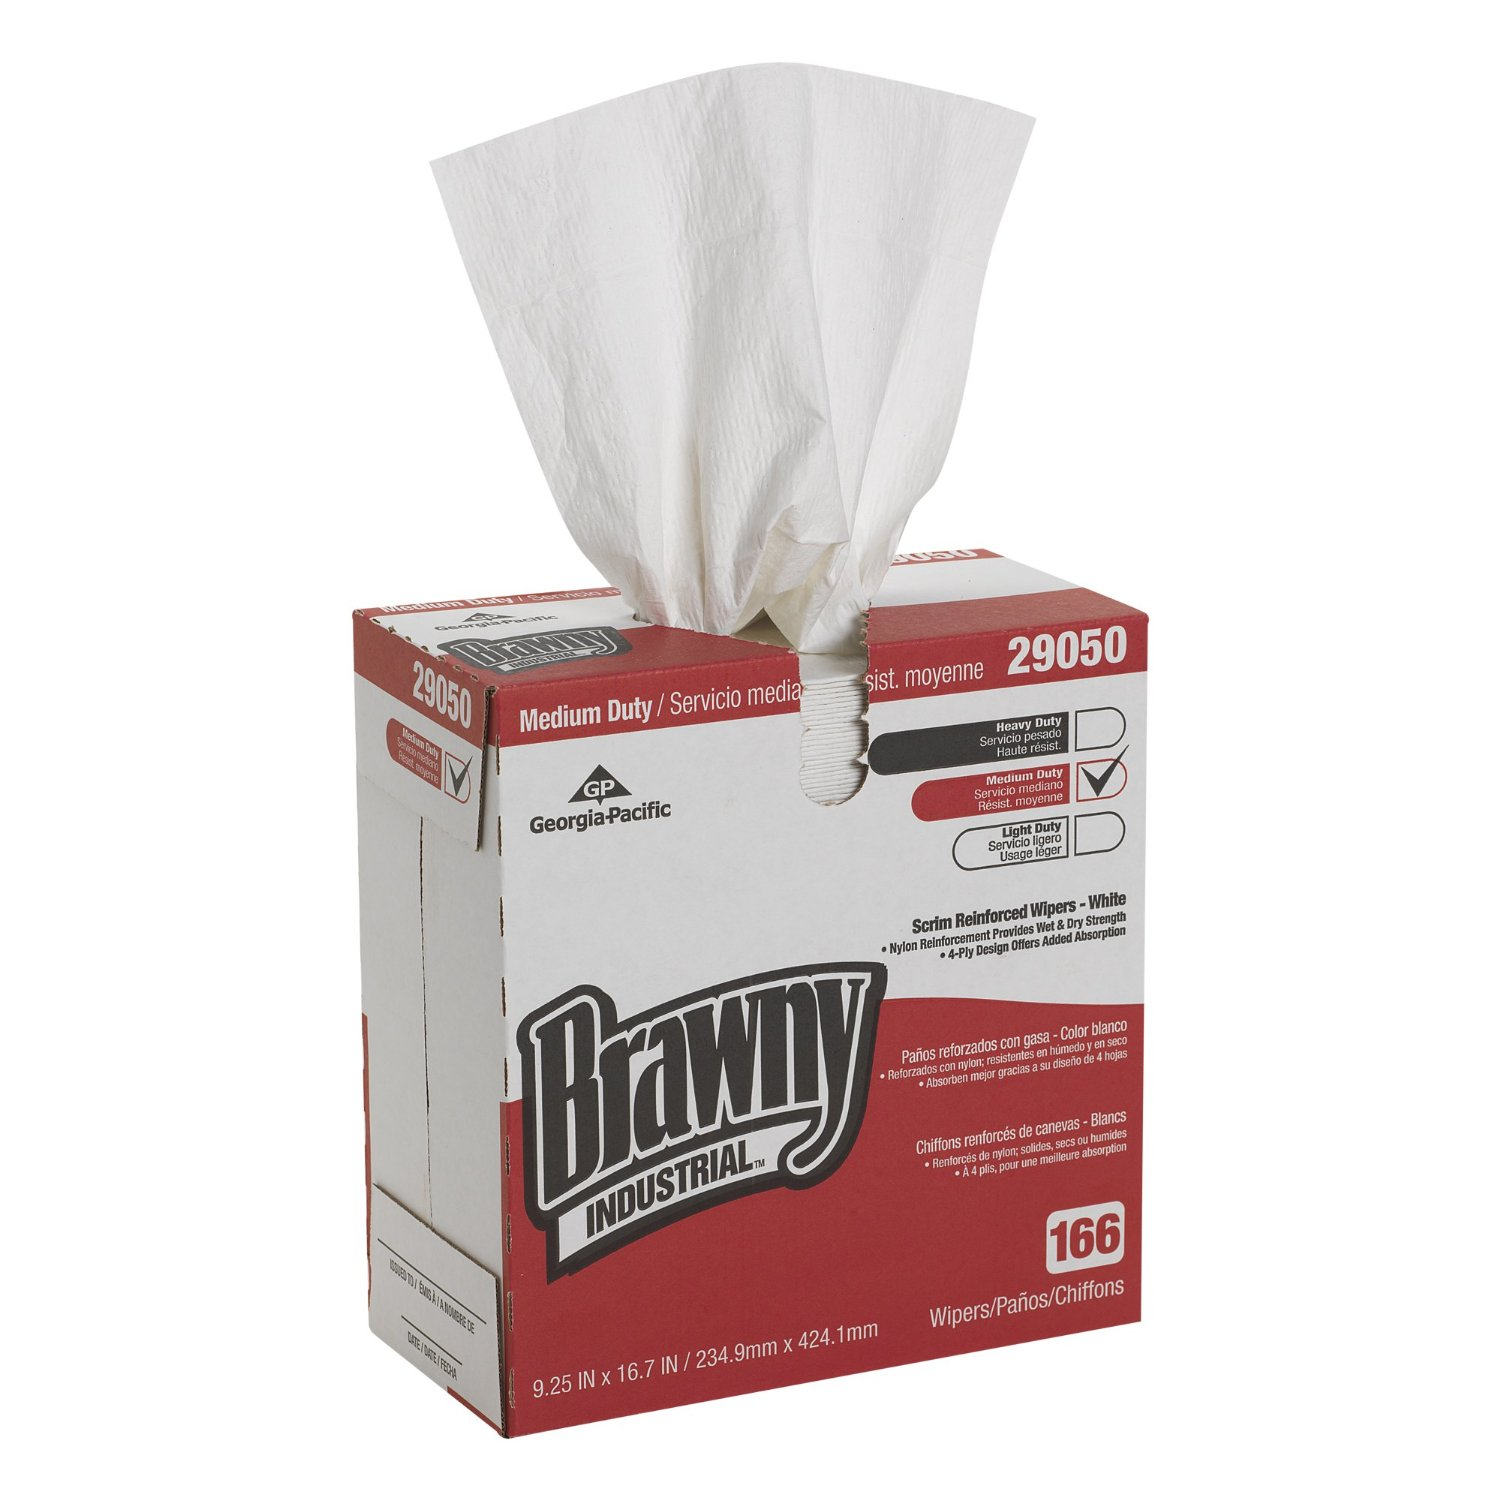 Brawny 2905003 White 4ply Scrimreinforced Paper Wipers